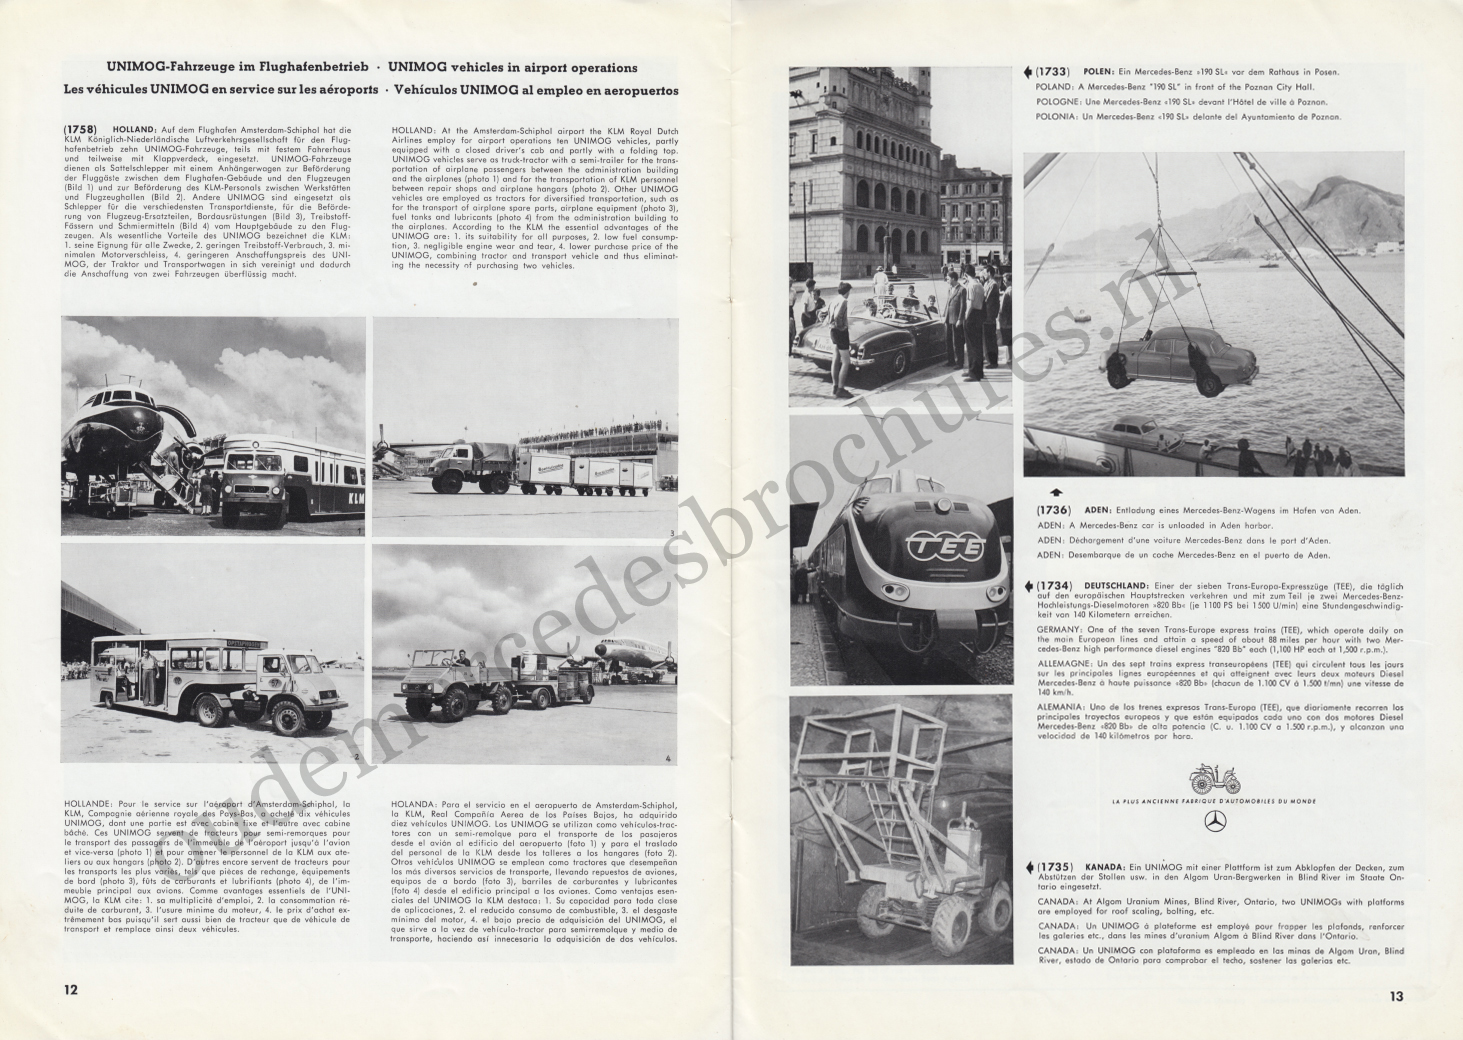 (REVISTA): Periódico In aller welt n.º 13 - Mercedes-Benz no mundo - 1957 - multilingue 007